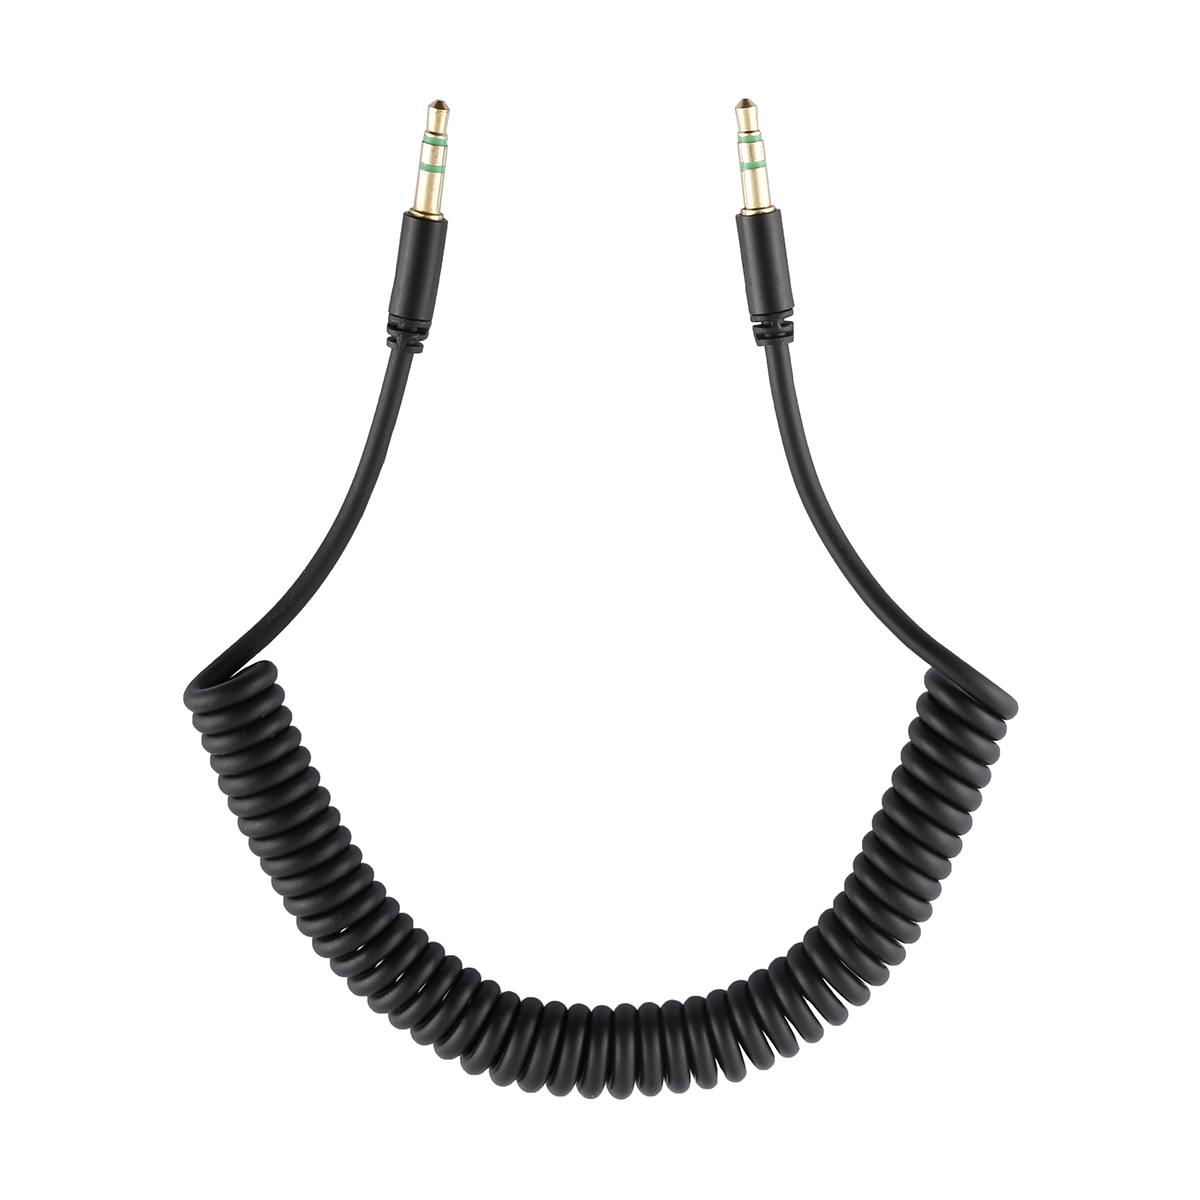 Aux Spiral Coiled Cable